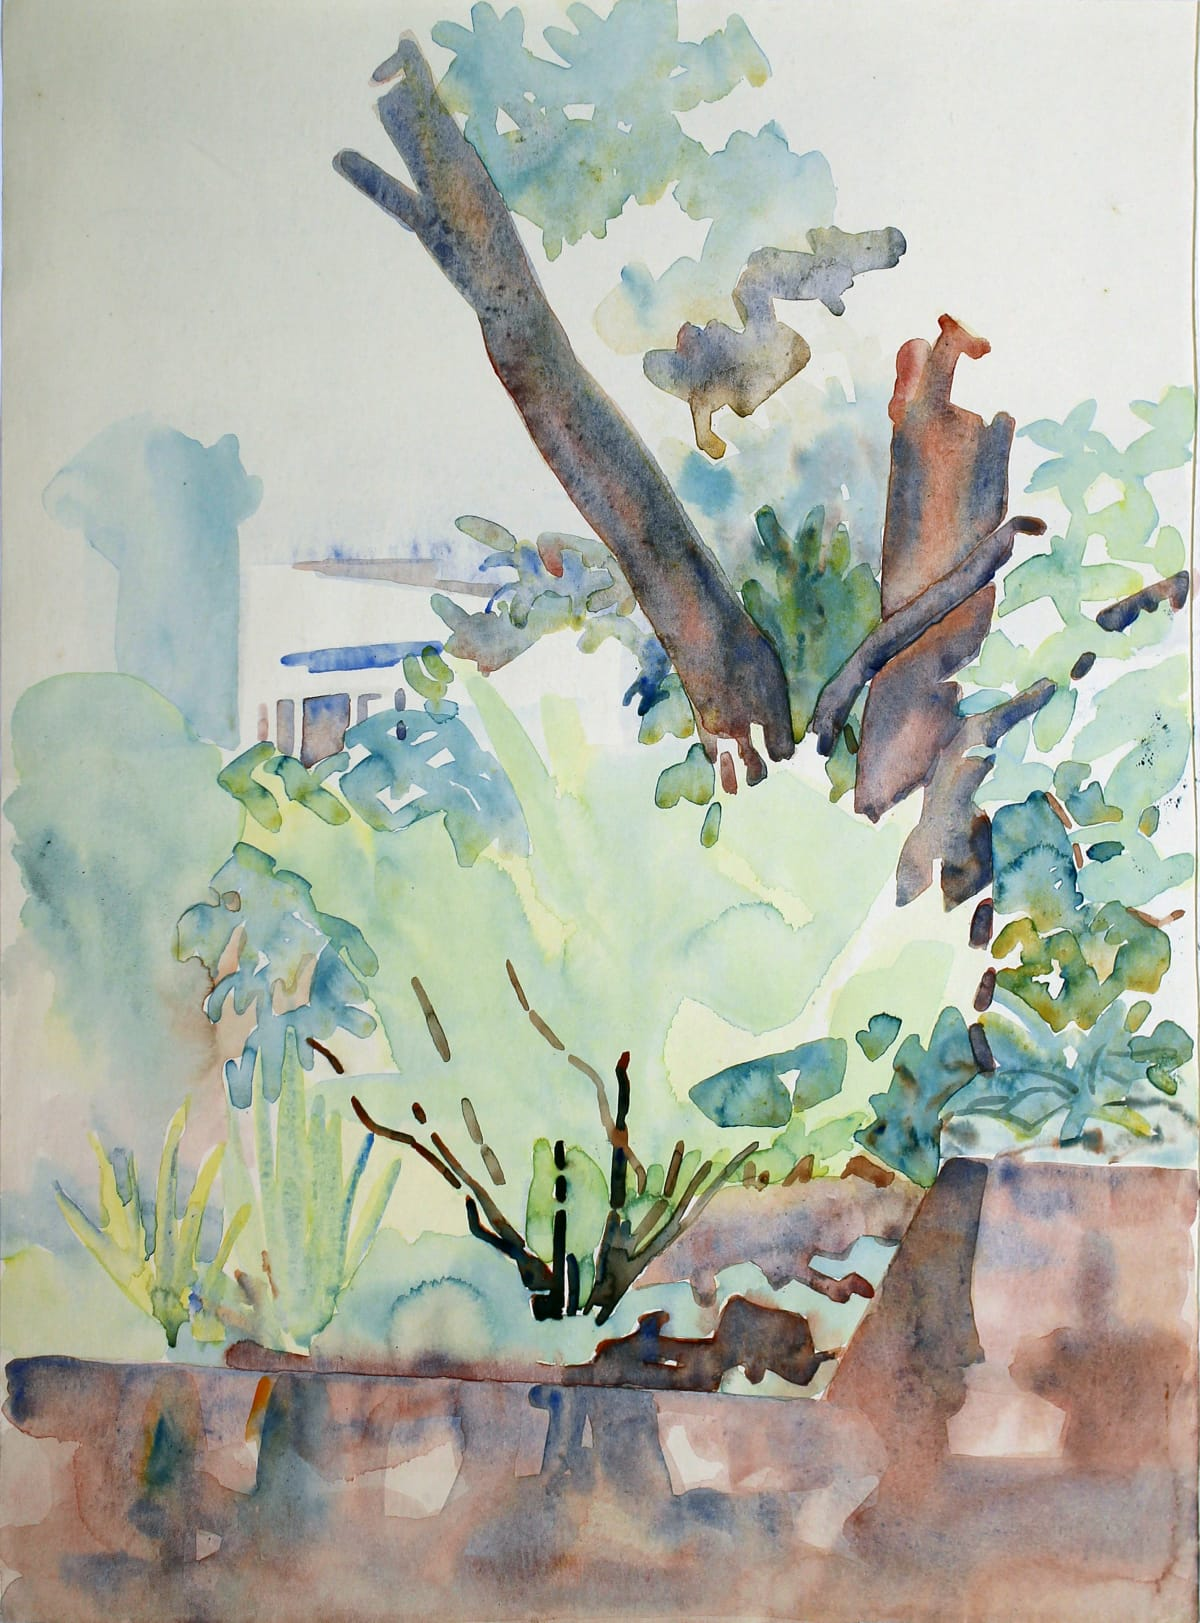 Rita Angus Tree Study, Thorndon, n.d. Watercolour on paper 14.9 x 11 in 37.9 x 27.9 cm